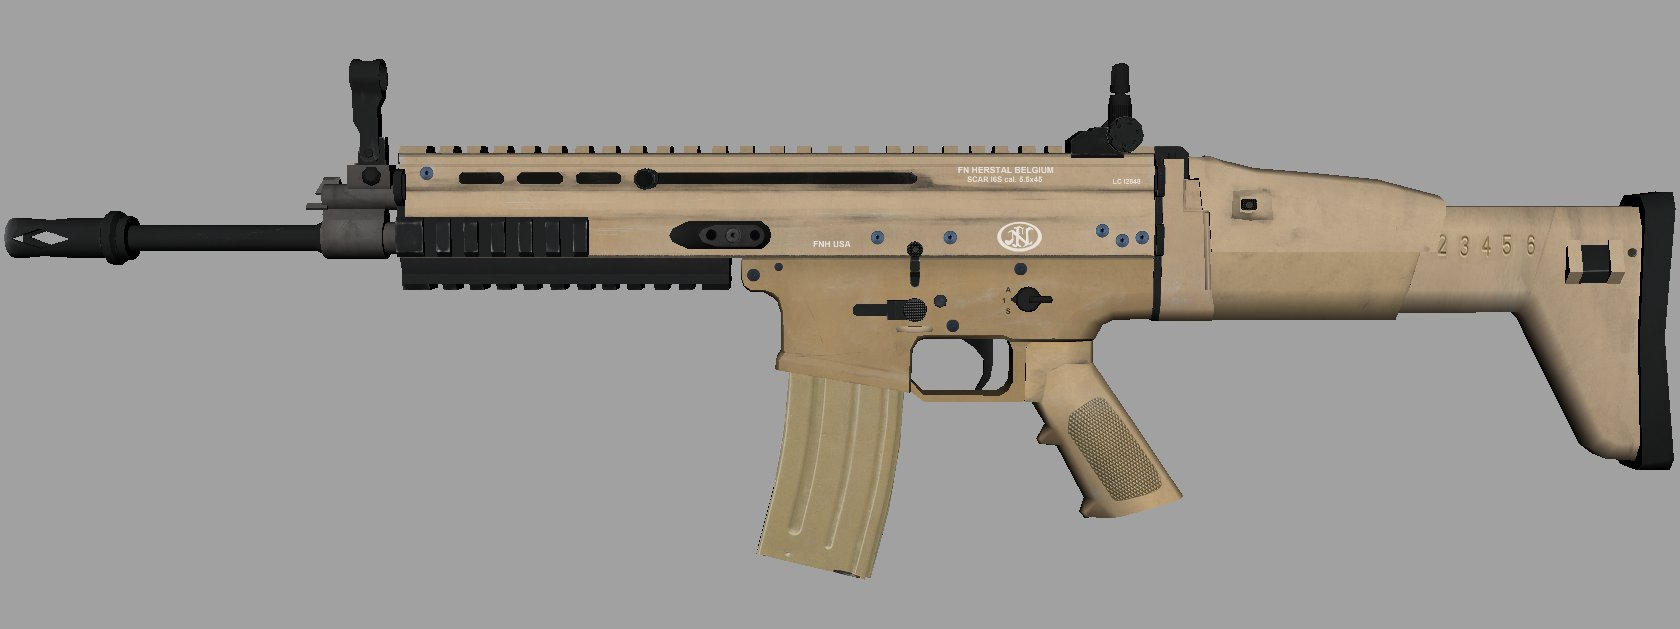 New Scar L Textured Model Image Elite Squad Mod Db